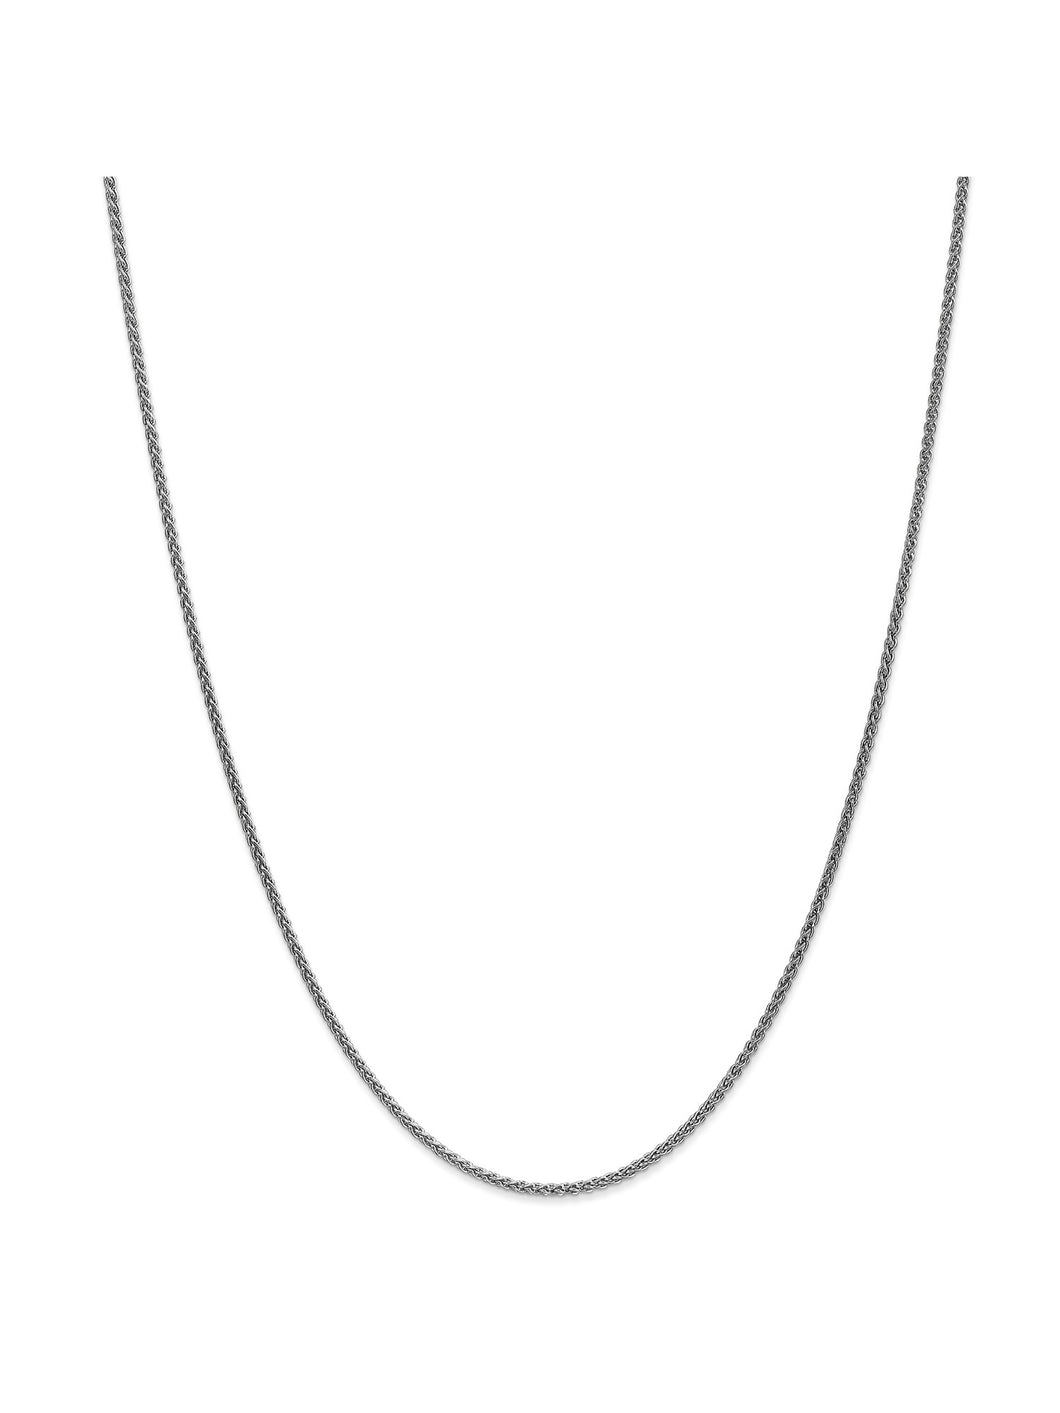 14k White Gold 1.65mm Wide Wheat Chain Necklace